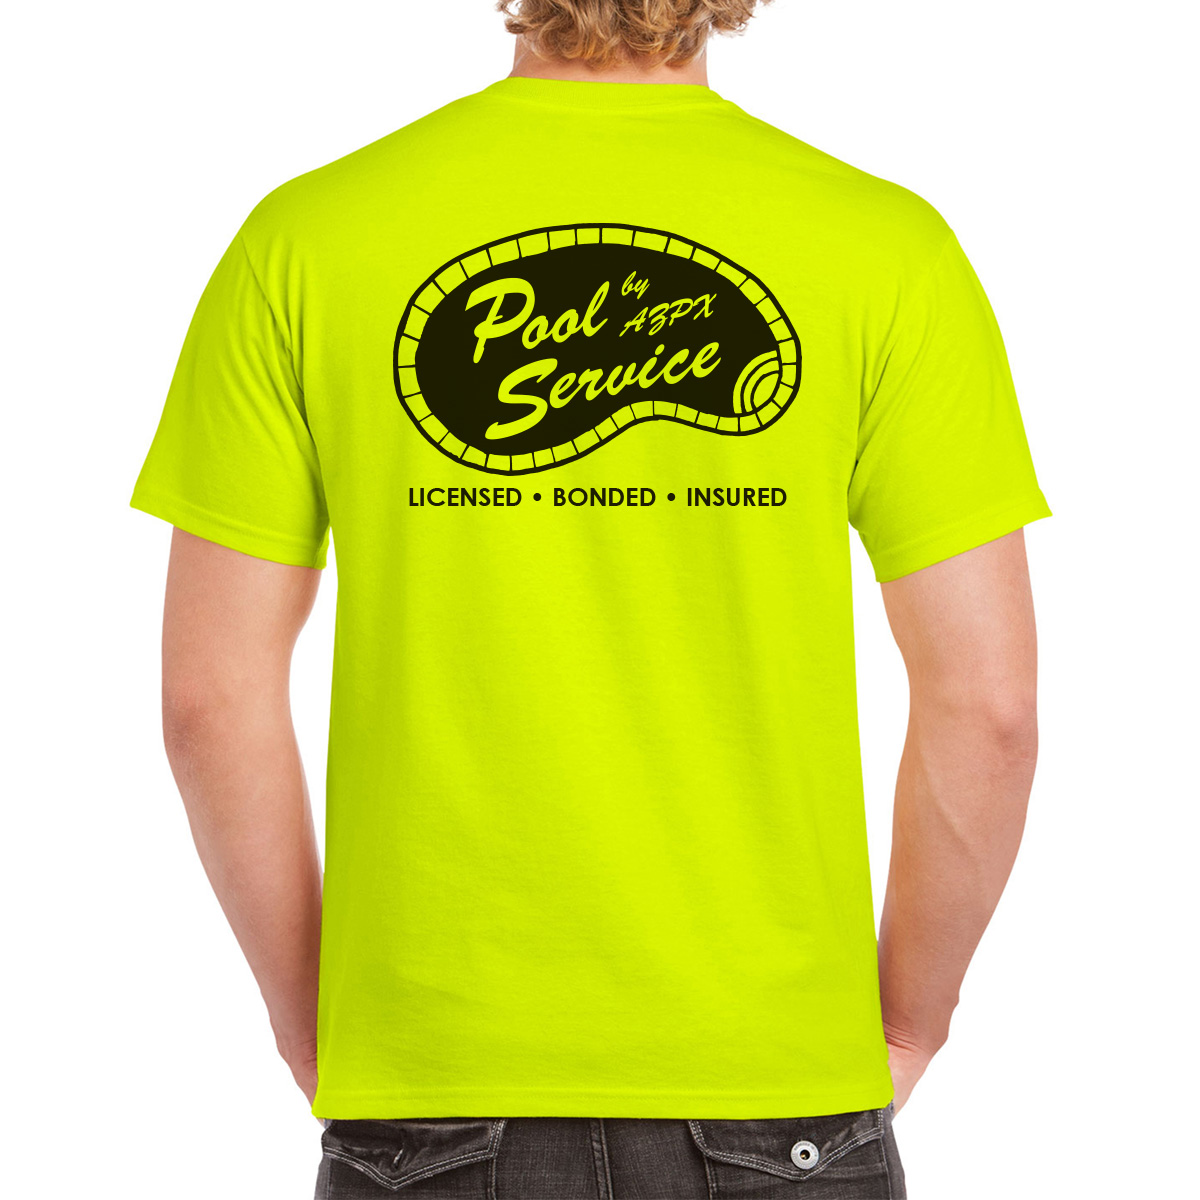 AZPX Safety Green Pool Service T-shirt